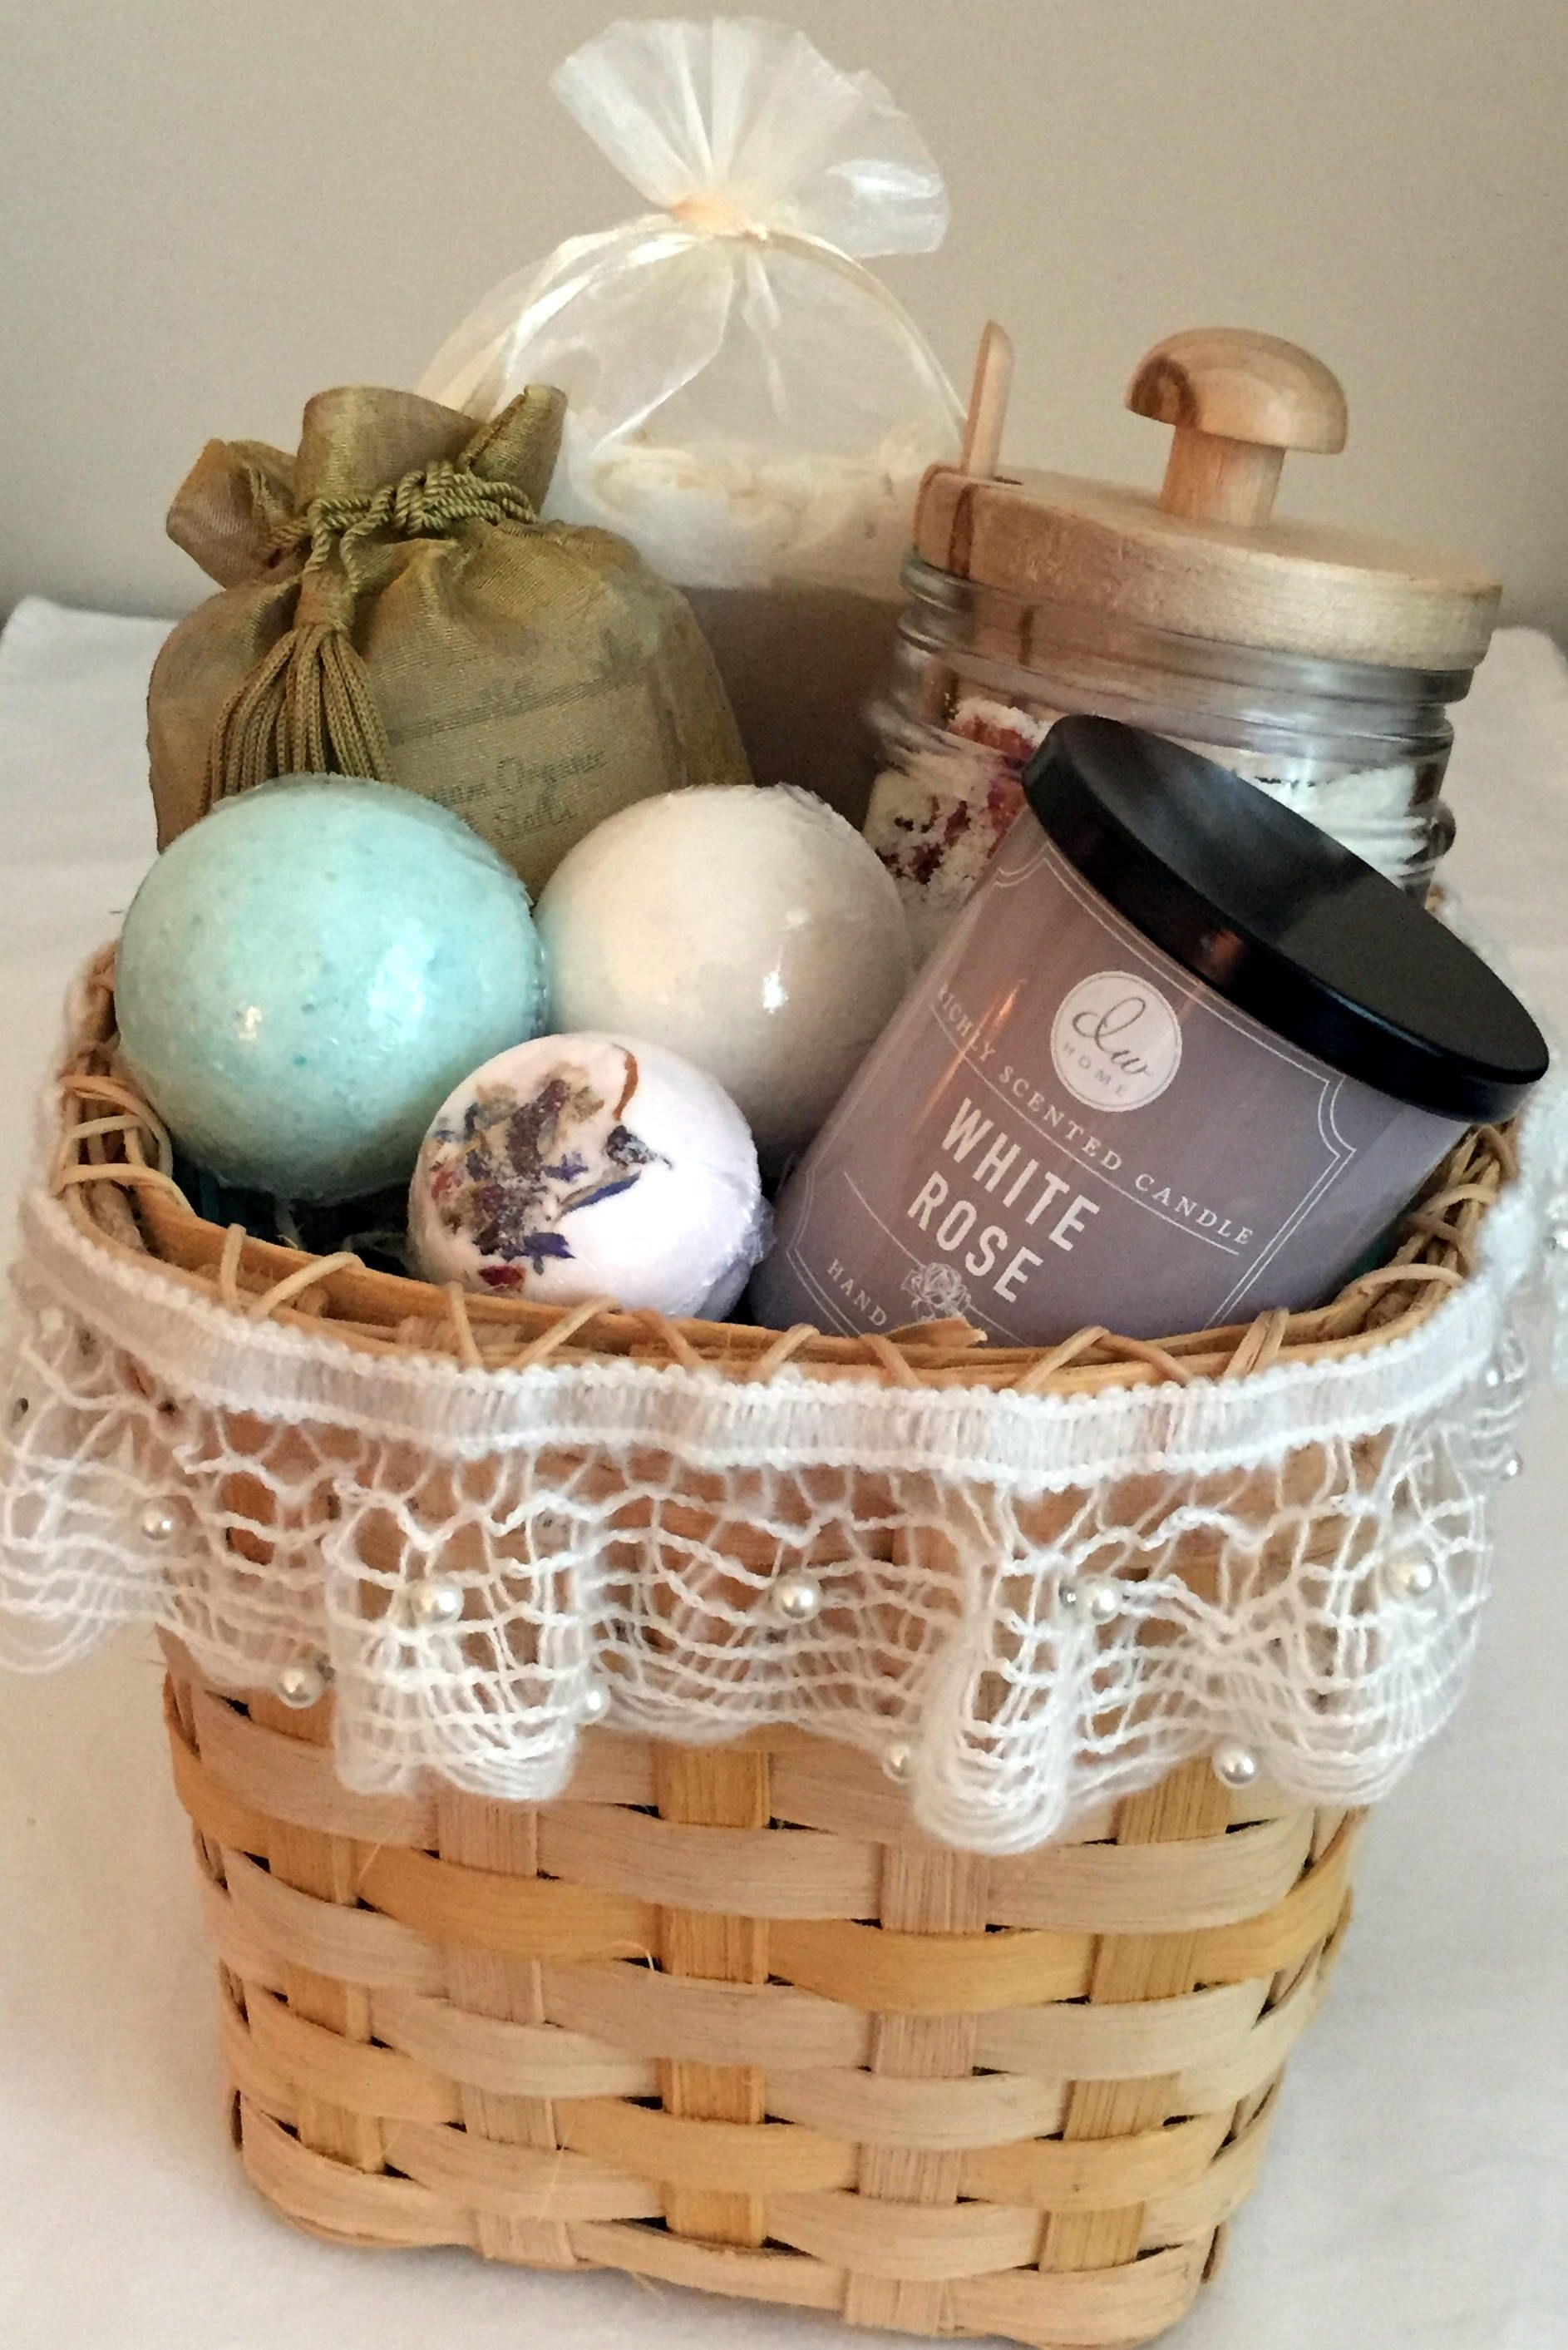 Spa gift setmothers day gift basketmothers daygifts for mom spa gift setmothers day gift basketmothers daygifts for mombath bombsrose milk bathgift set for womengift wrappedgift basket moms negle Choice Image